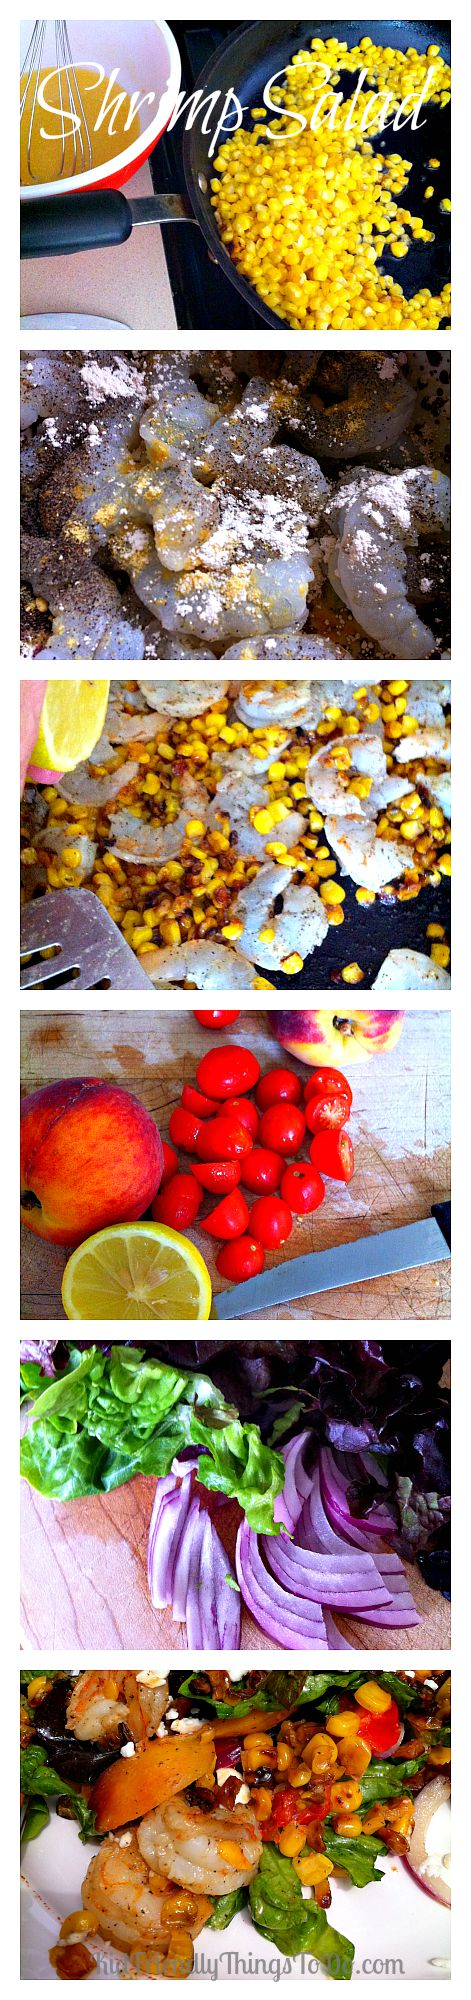 Roasted Corn, Nectarine, and Feta Cheese Shrimp Salad Recipe. The dressing gets even better!